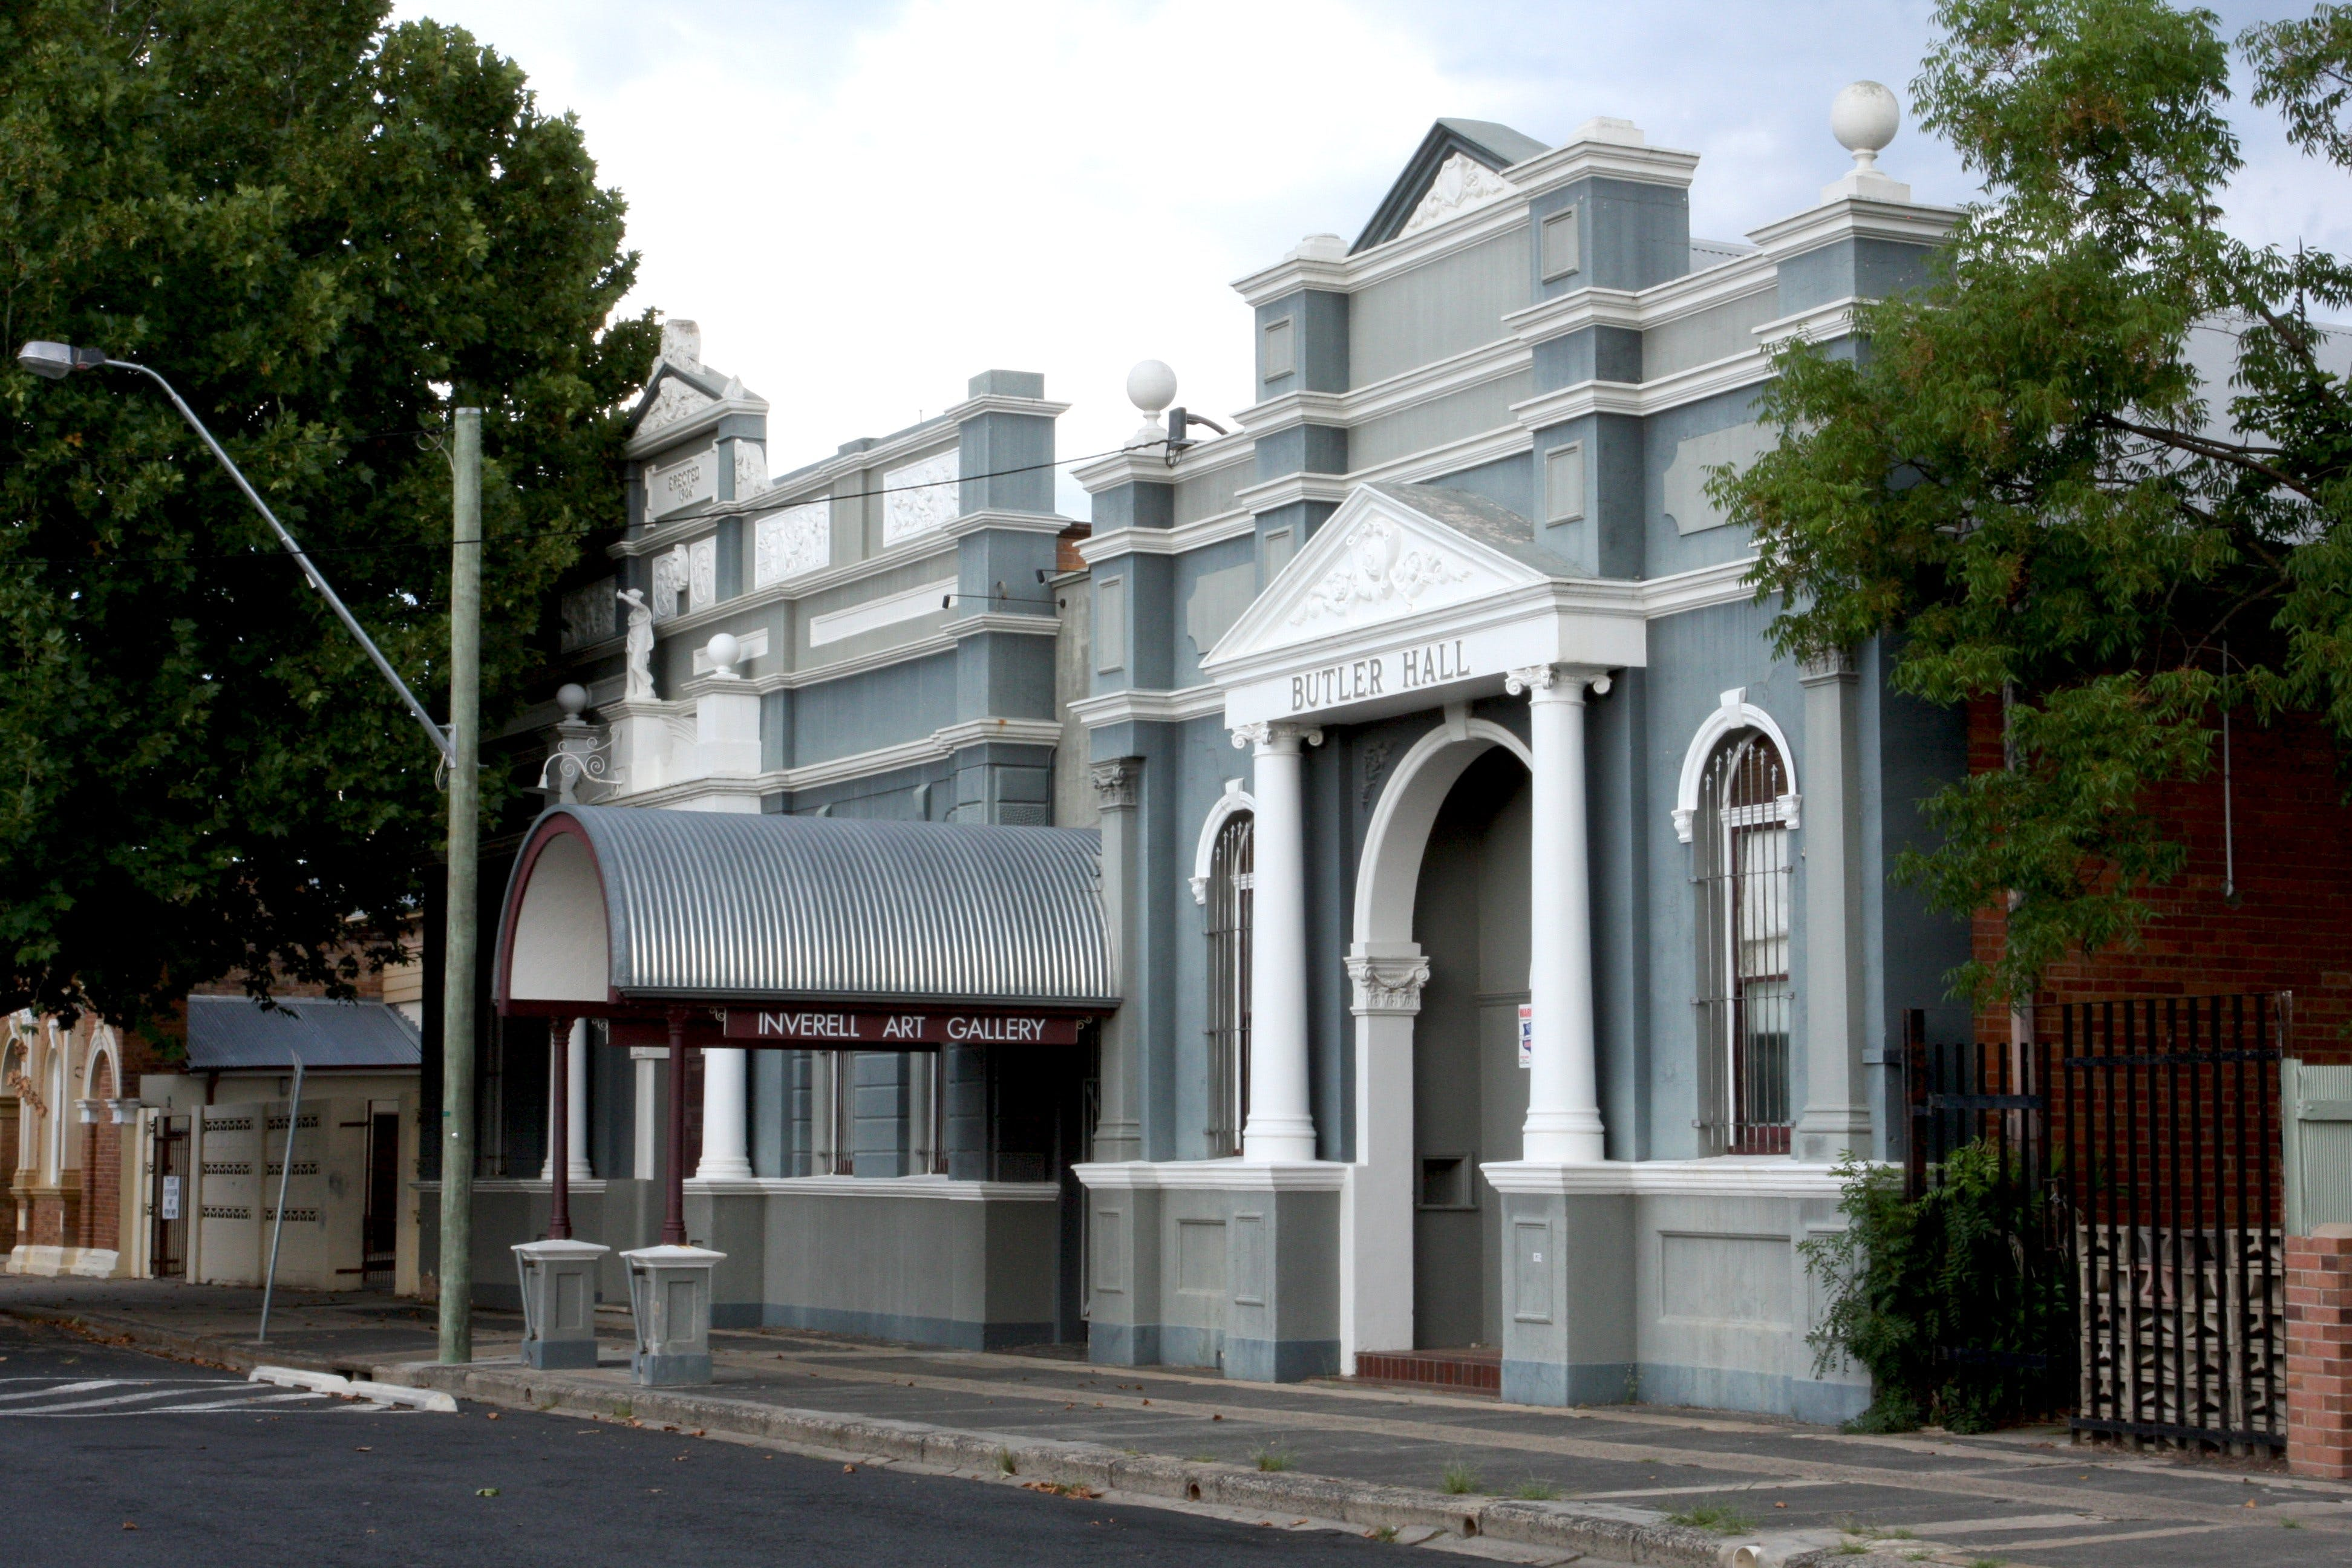 Inverell Art  Gallery - Accommodation in Bendigo